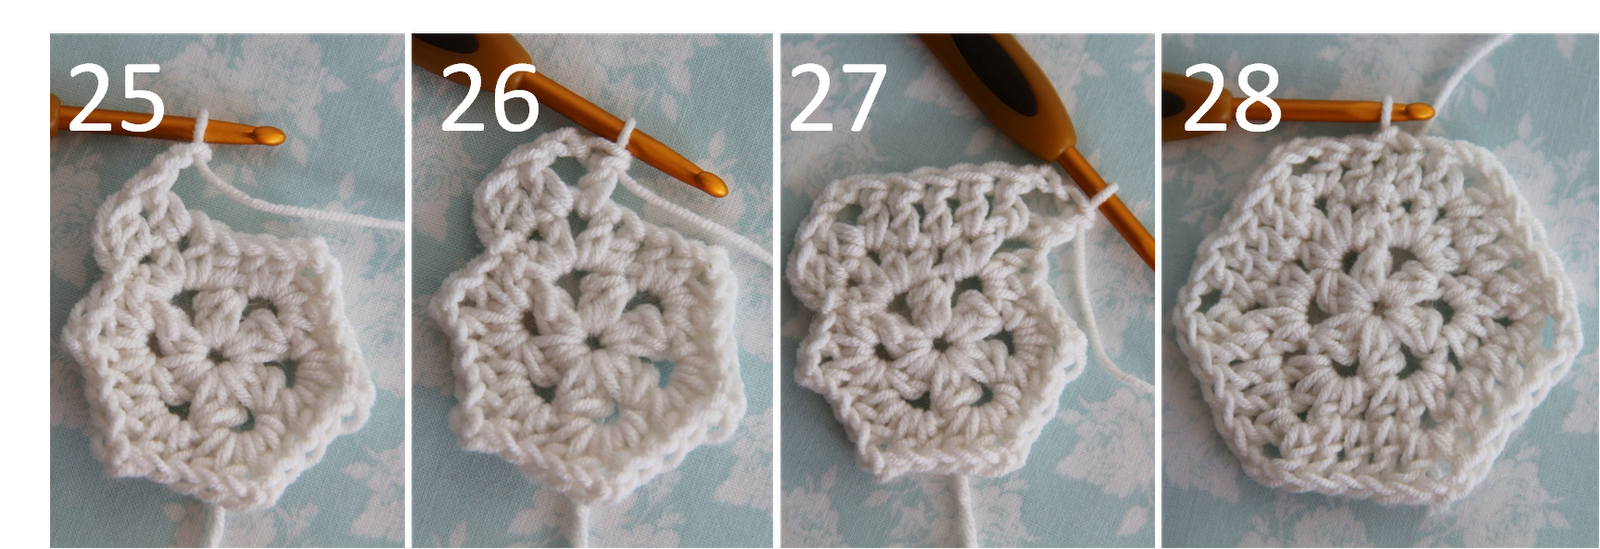 Crochet Tutorial : 25. corners: double crochet, chain 2, double crochet in same corner